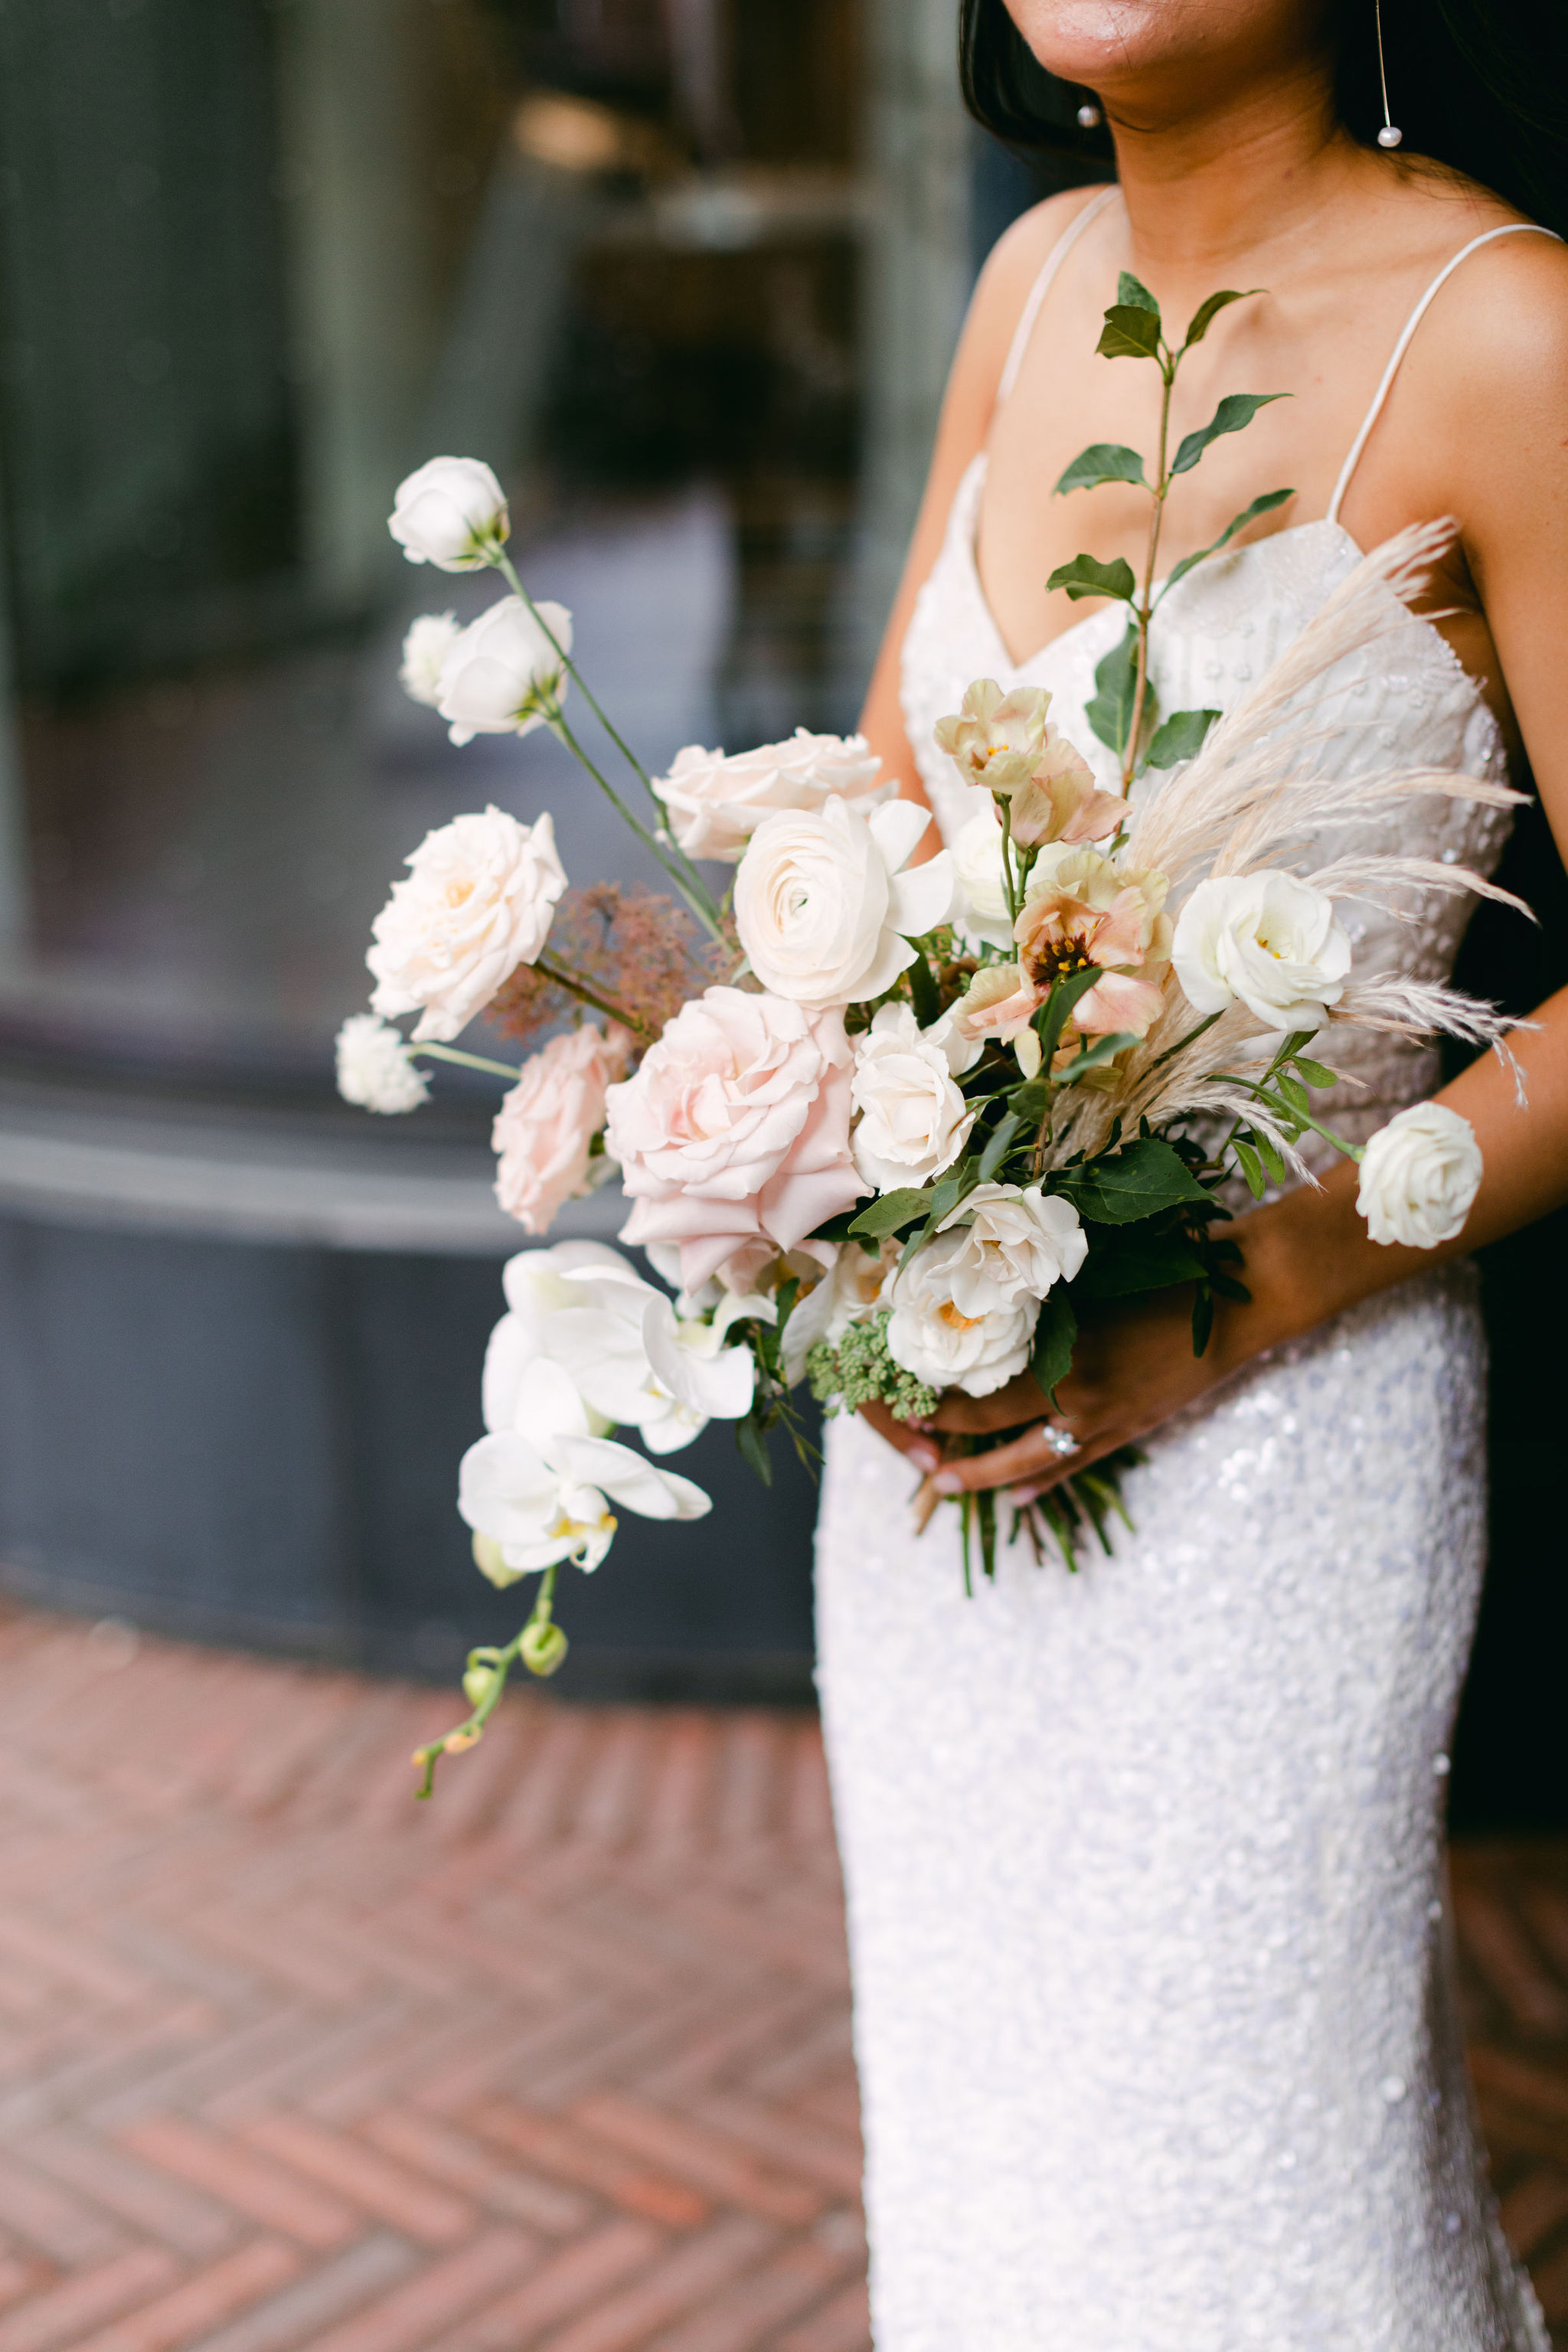 Bride with Flowers